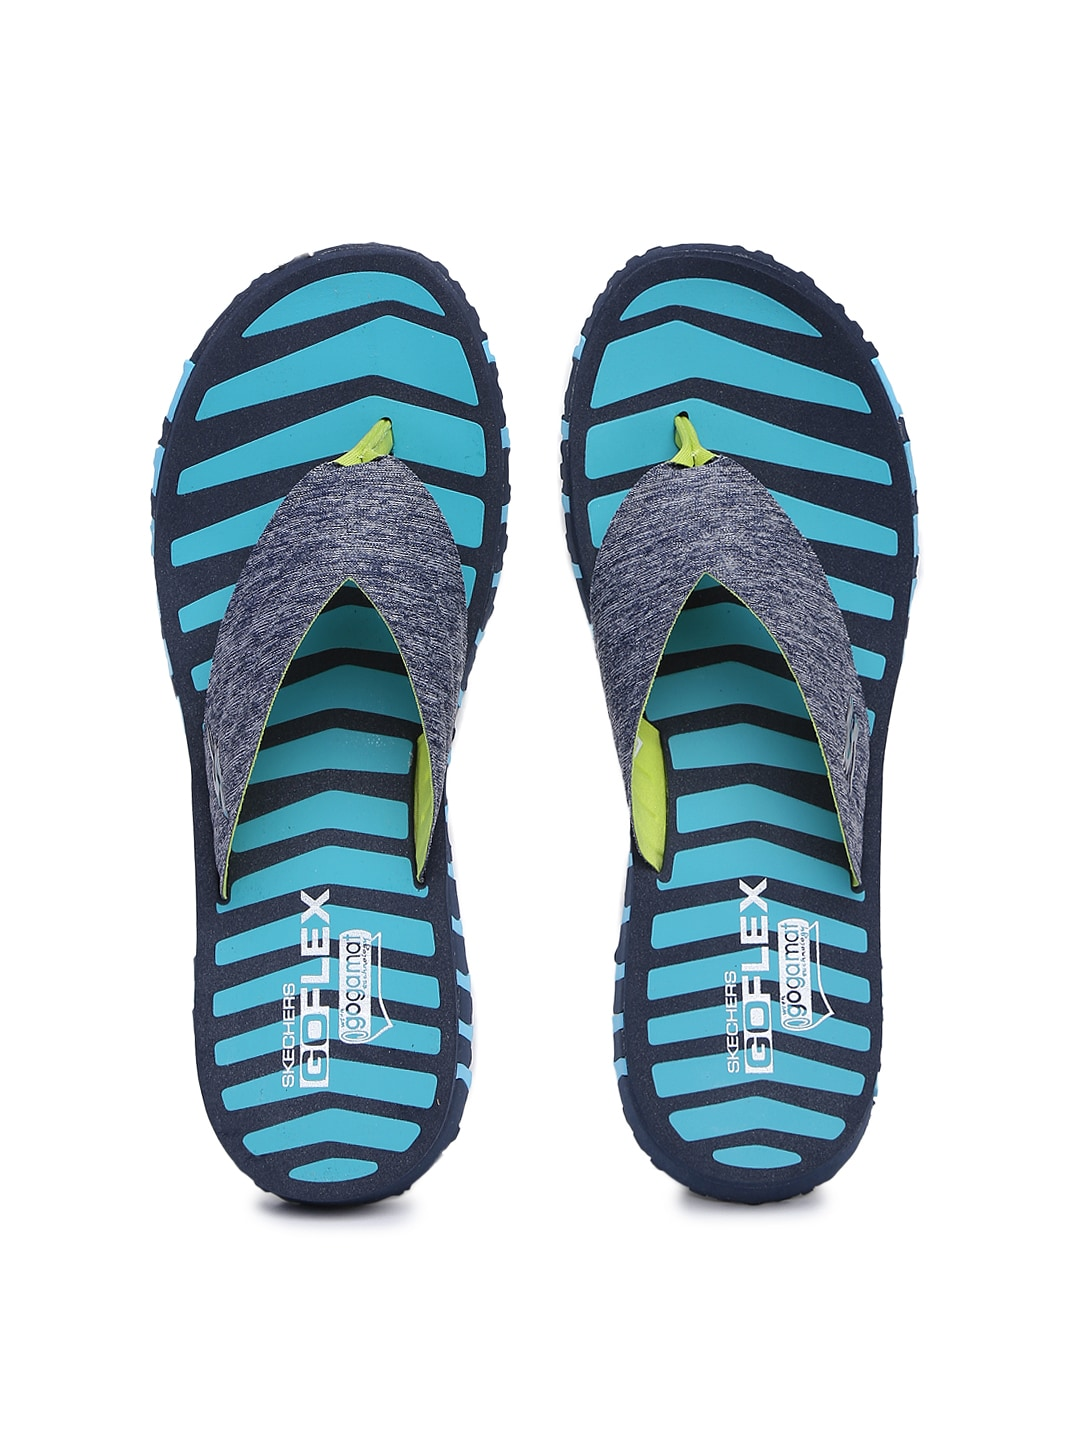 54636c0d78e6 Skechers 14258-nvbl Women Blue Striped Go Flex Vitality Flip Flops- Price  in India